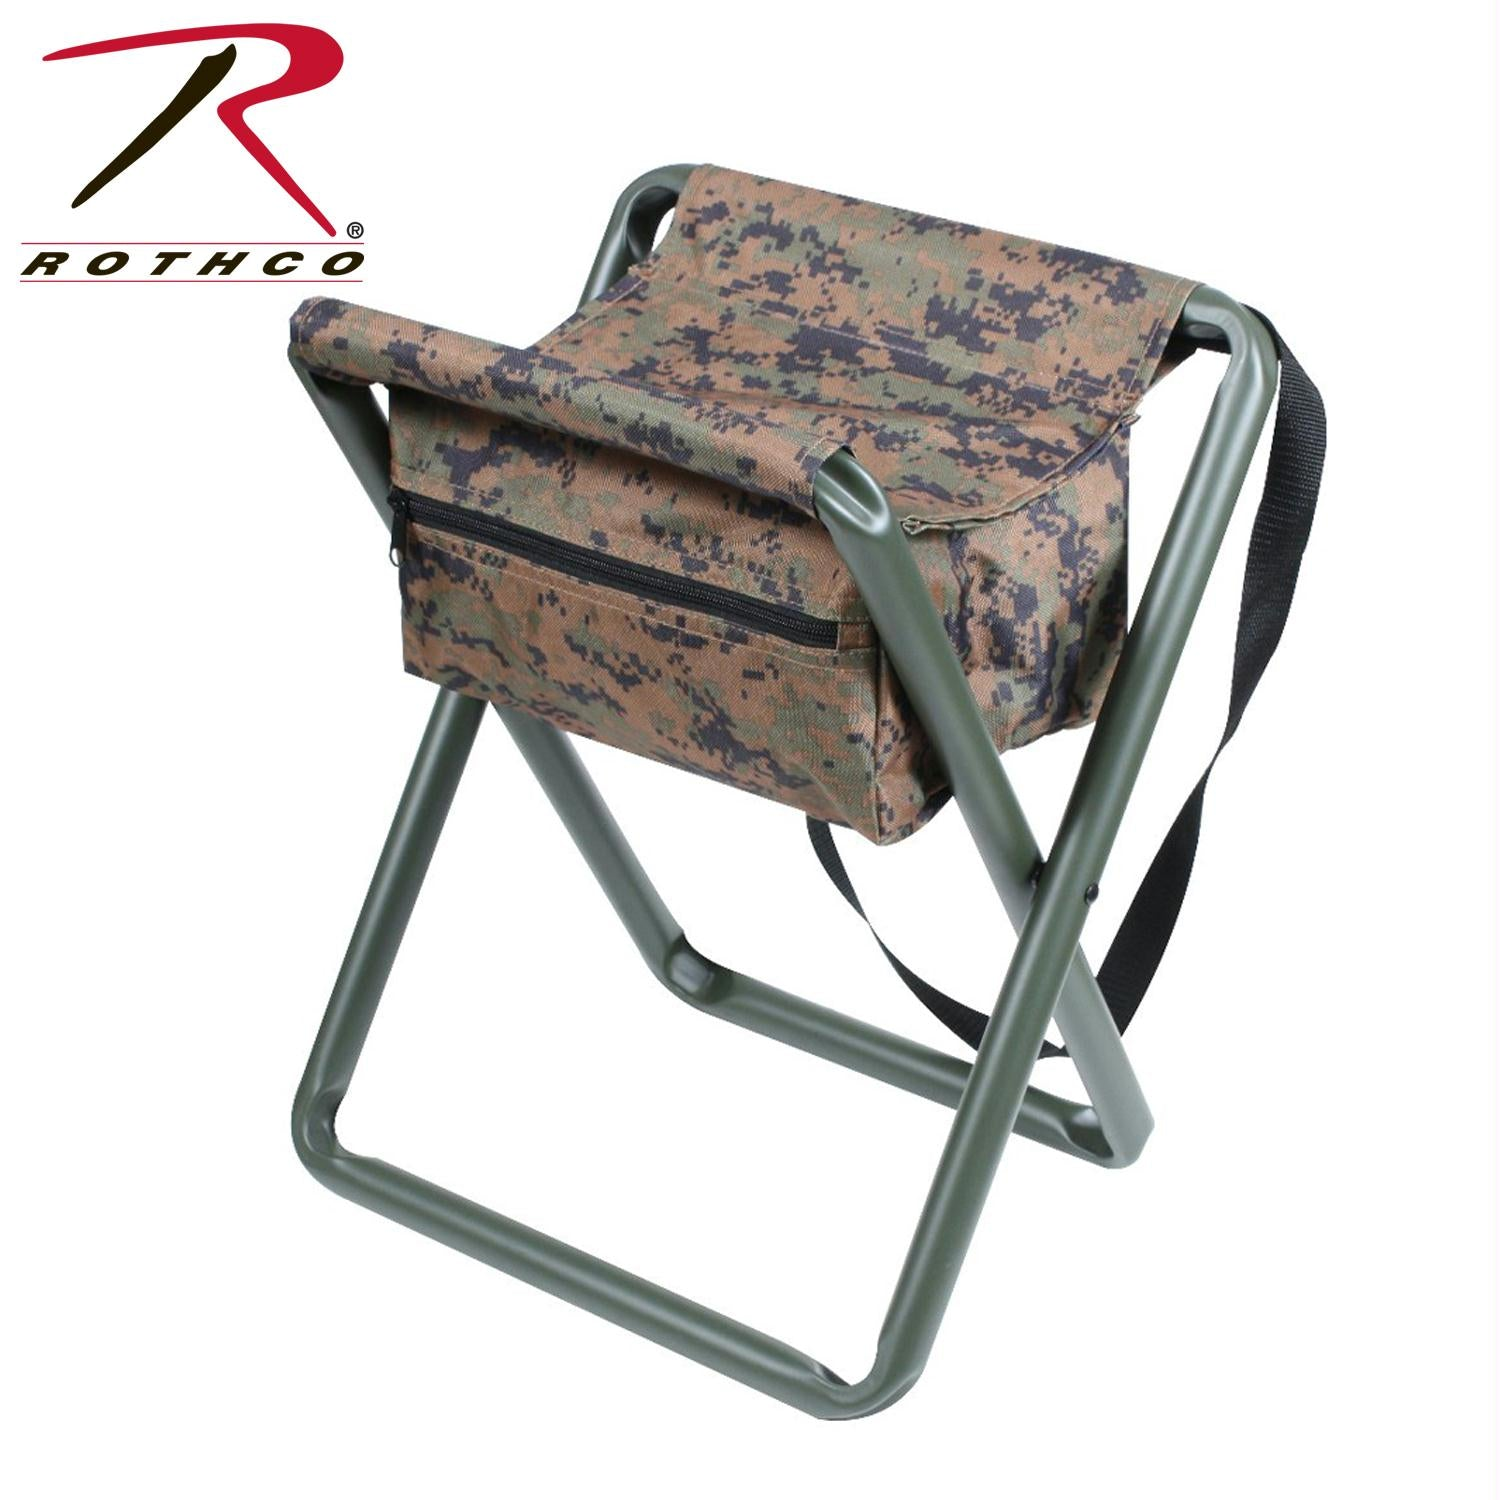 Rothco Deluxe Stool With Pouch - Woodland Digital Camo